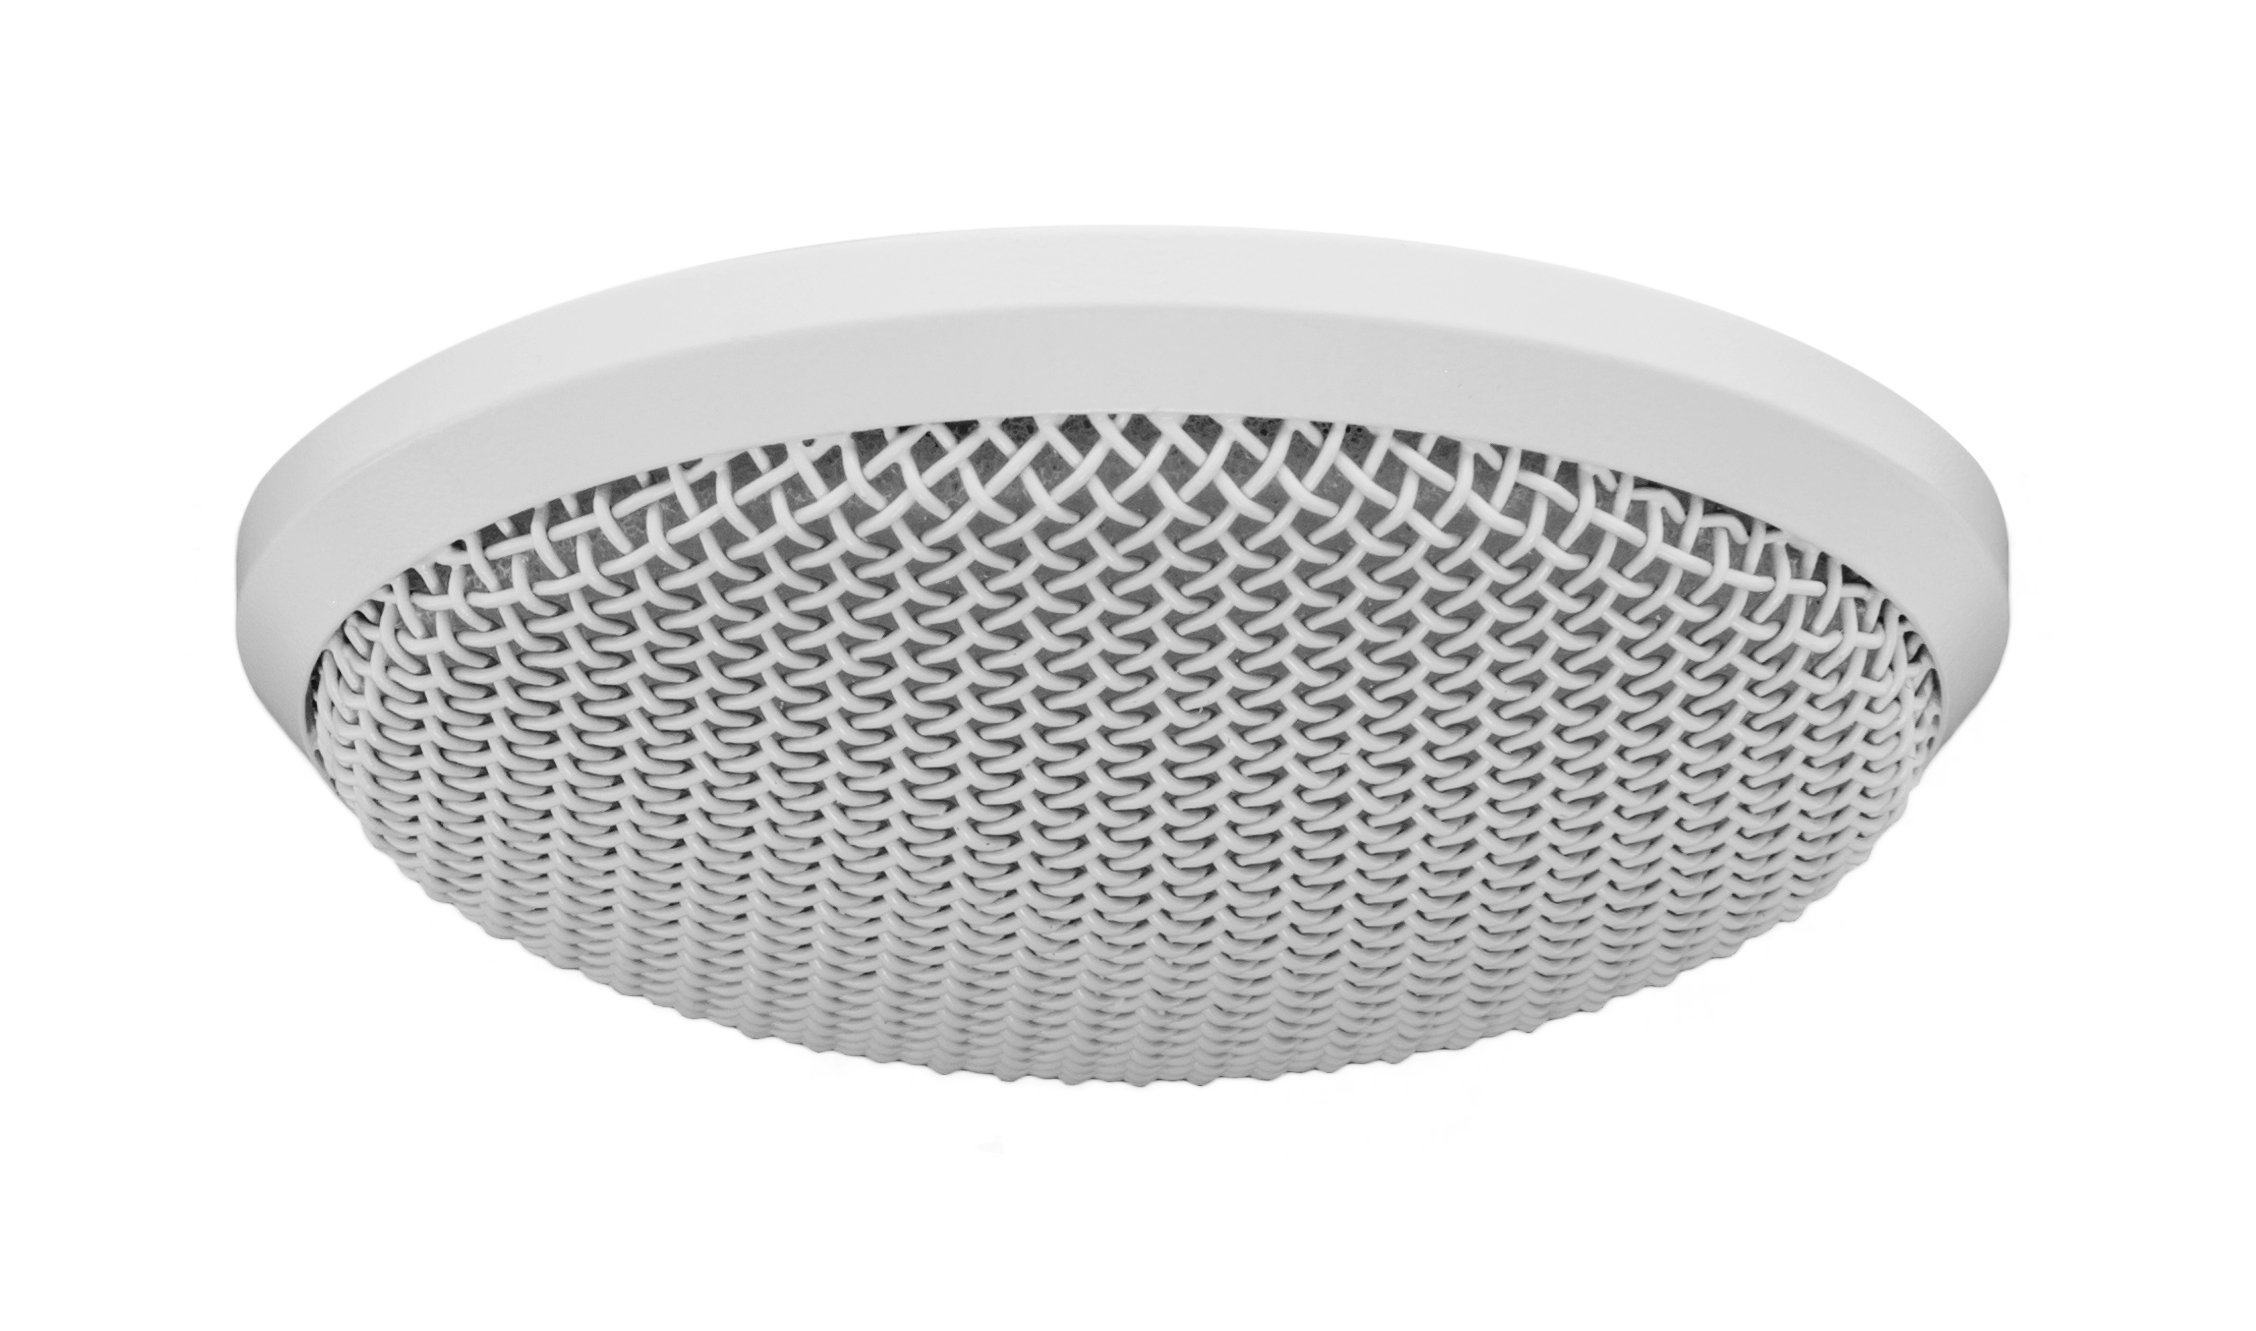 Audix M70wd Flush Mount Ceiling Microphone With Status Indicators For Audix Dante Aes67 Integrated Systems